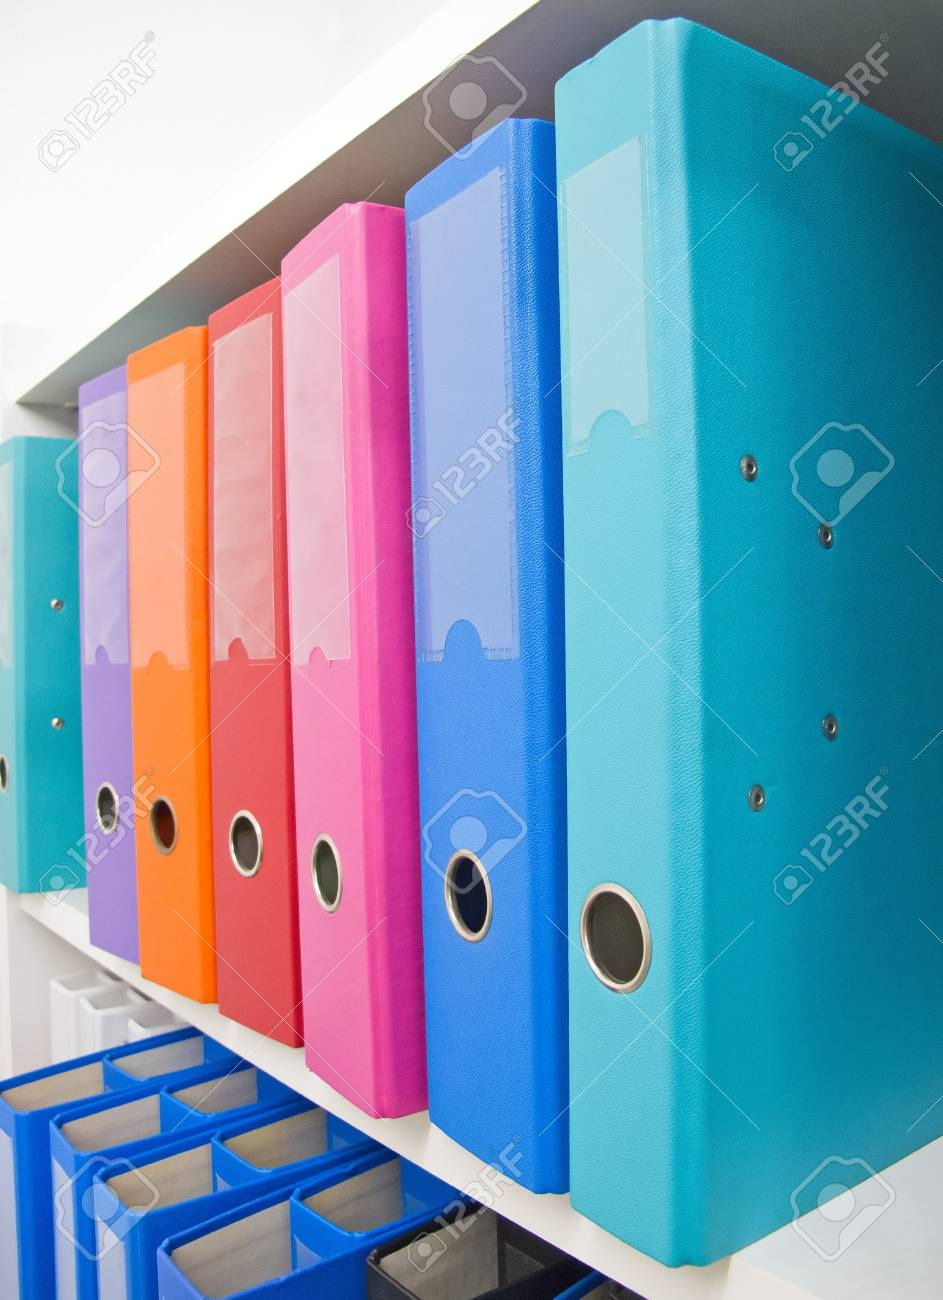 Colorful office folders on the bookshelf Stock Photo - 8780309